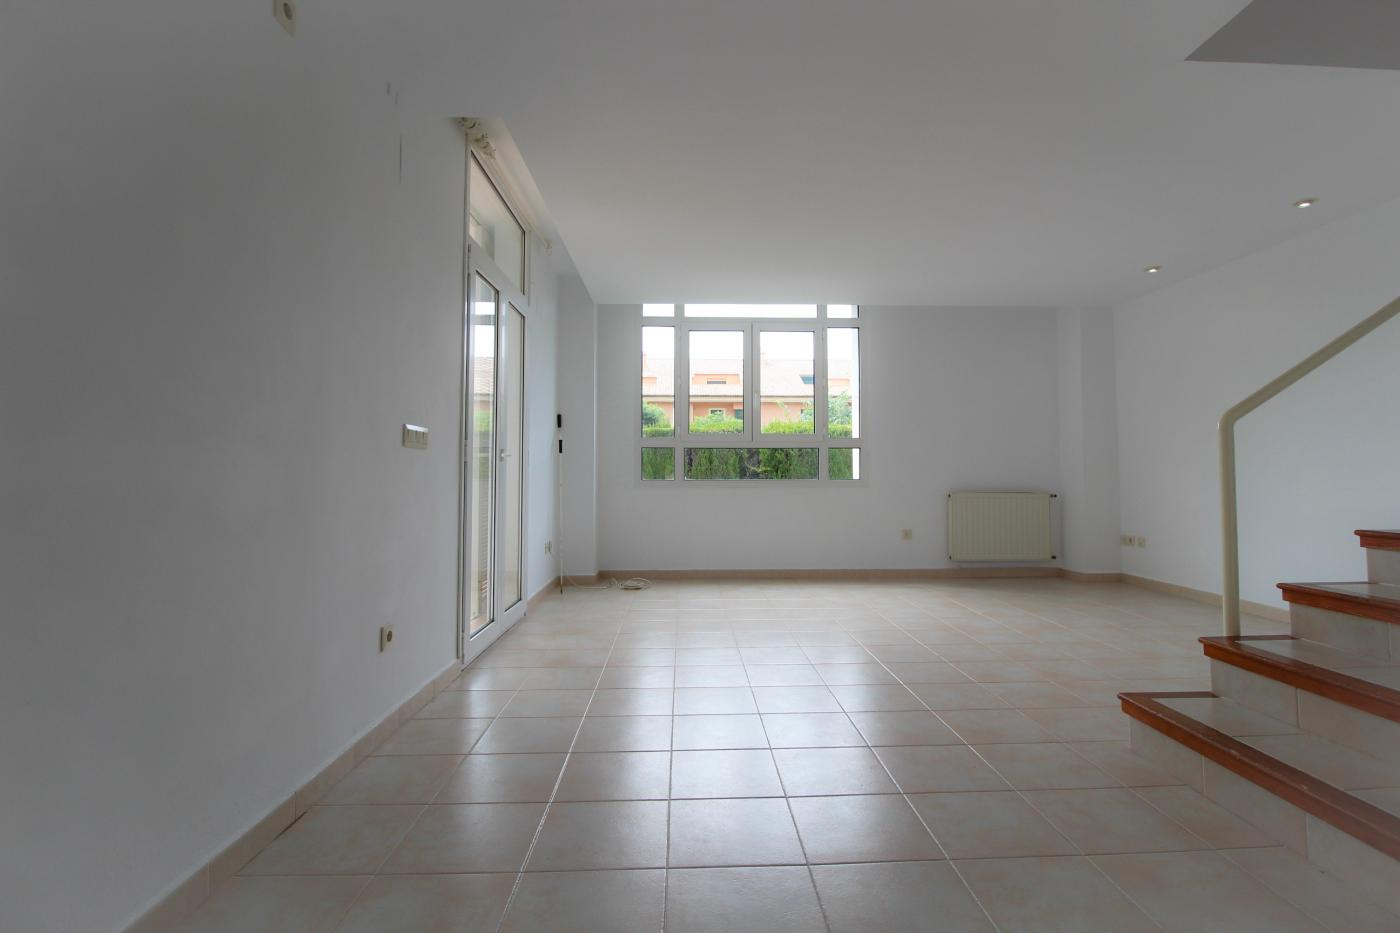 Townhouse for rent in Javea